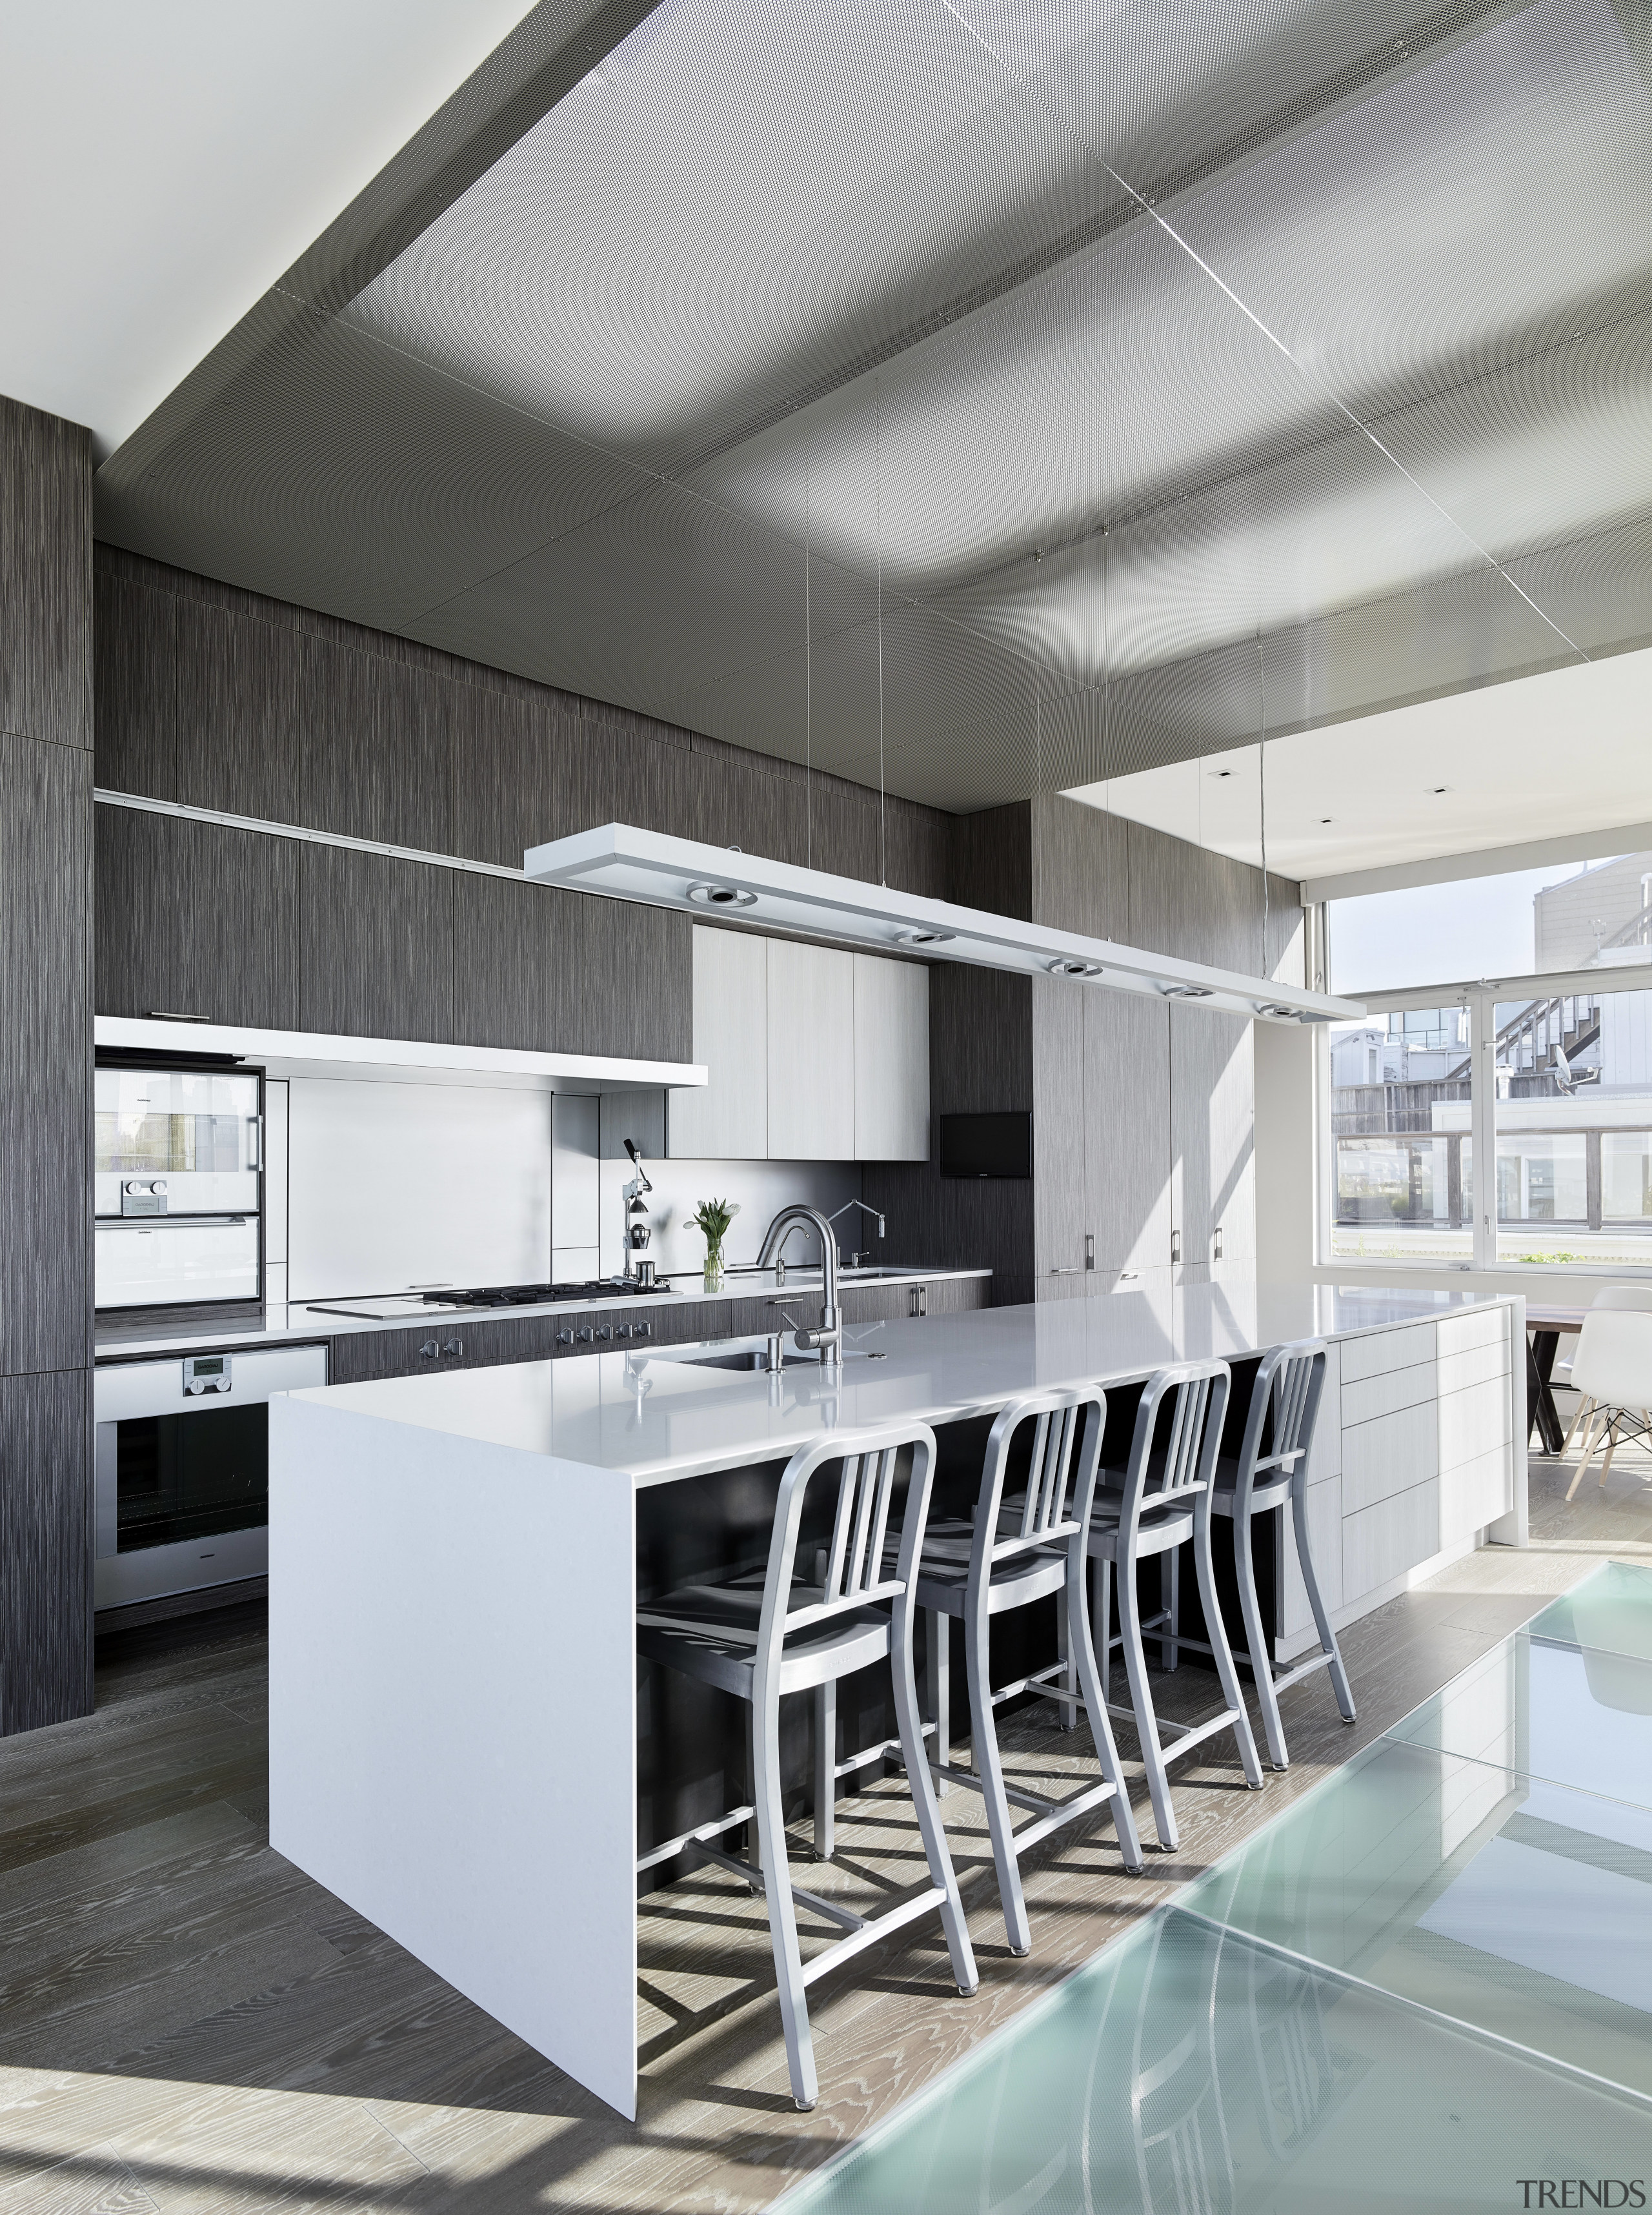 Concealed skylights provide a diffuse light for this architecture, countertop, interior design, kitchen, product design, white, gray